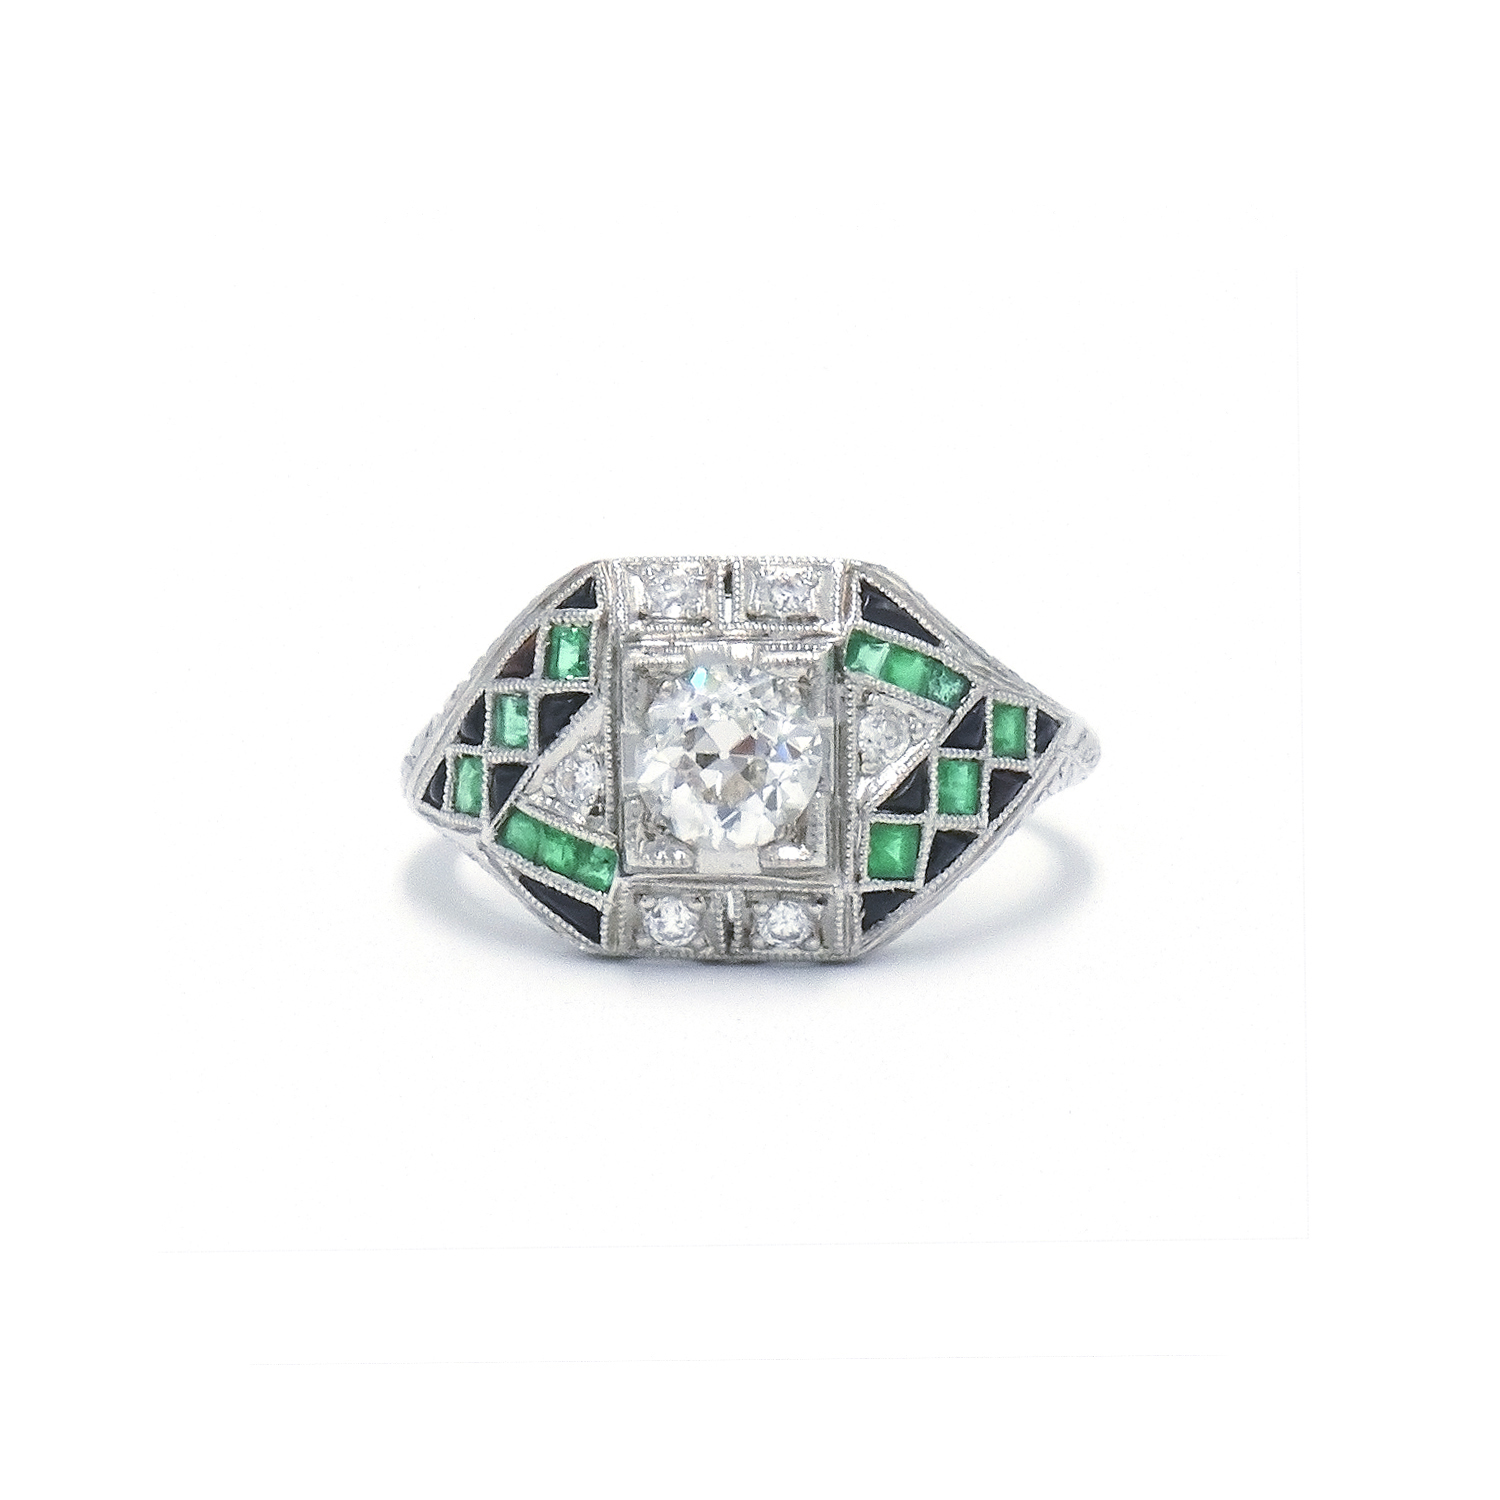 Art Deco Diamond, Emerald and Onyx Ring Style R-27155-FL-0-0